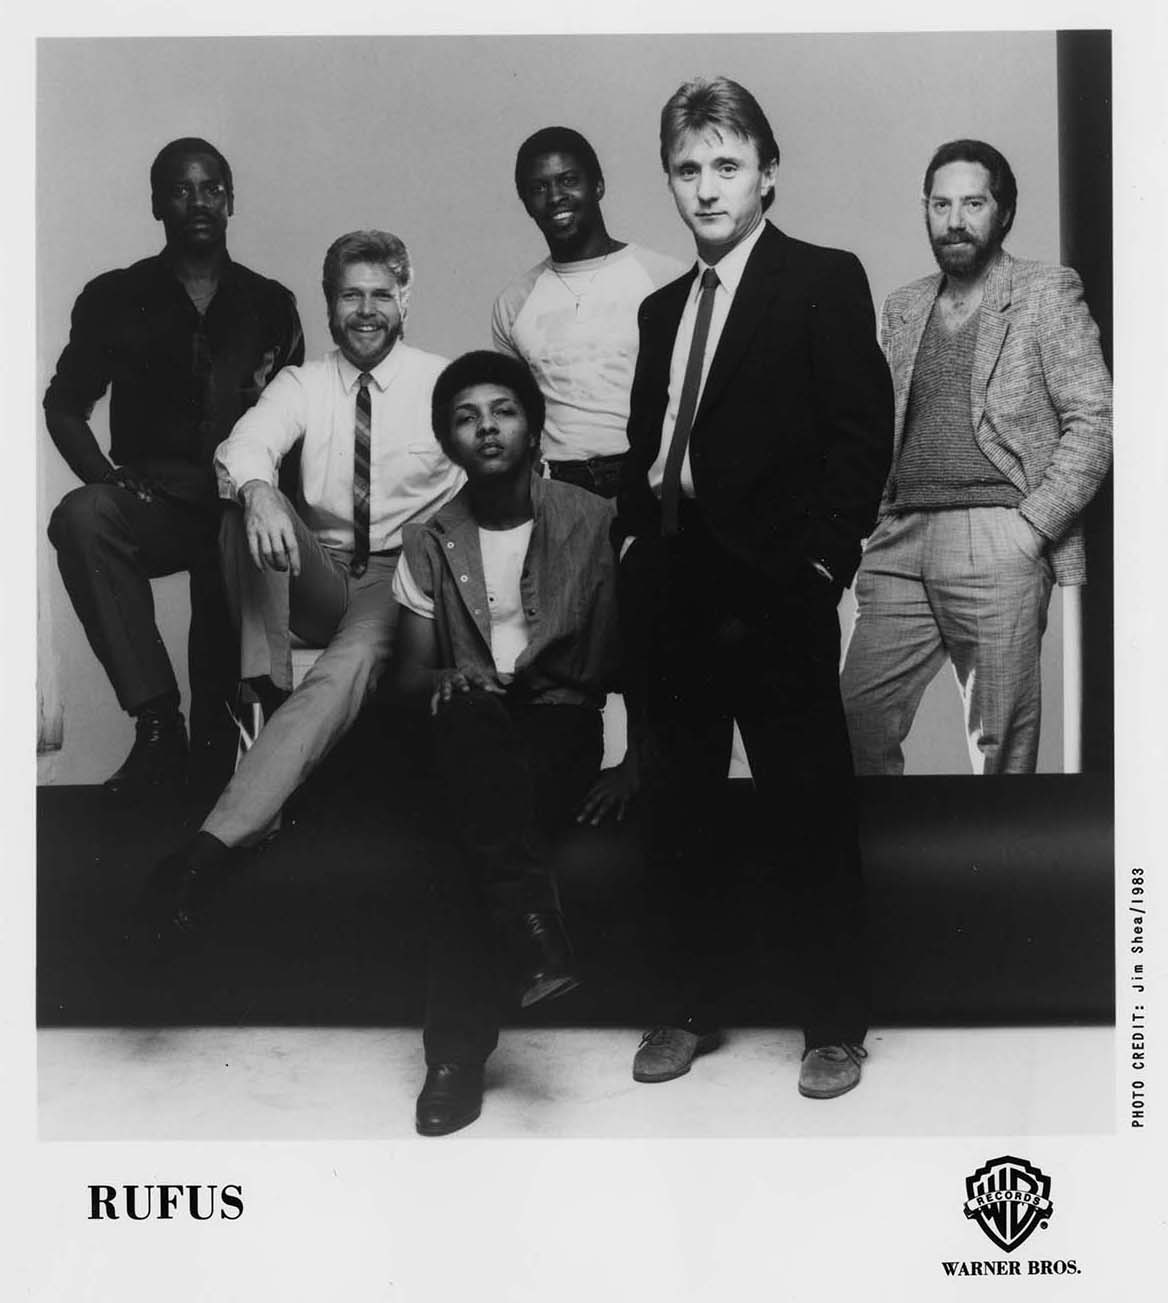 Promo photo of Rufus